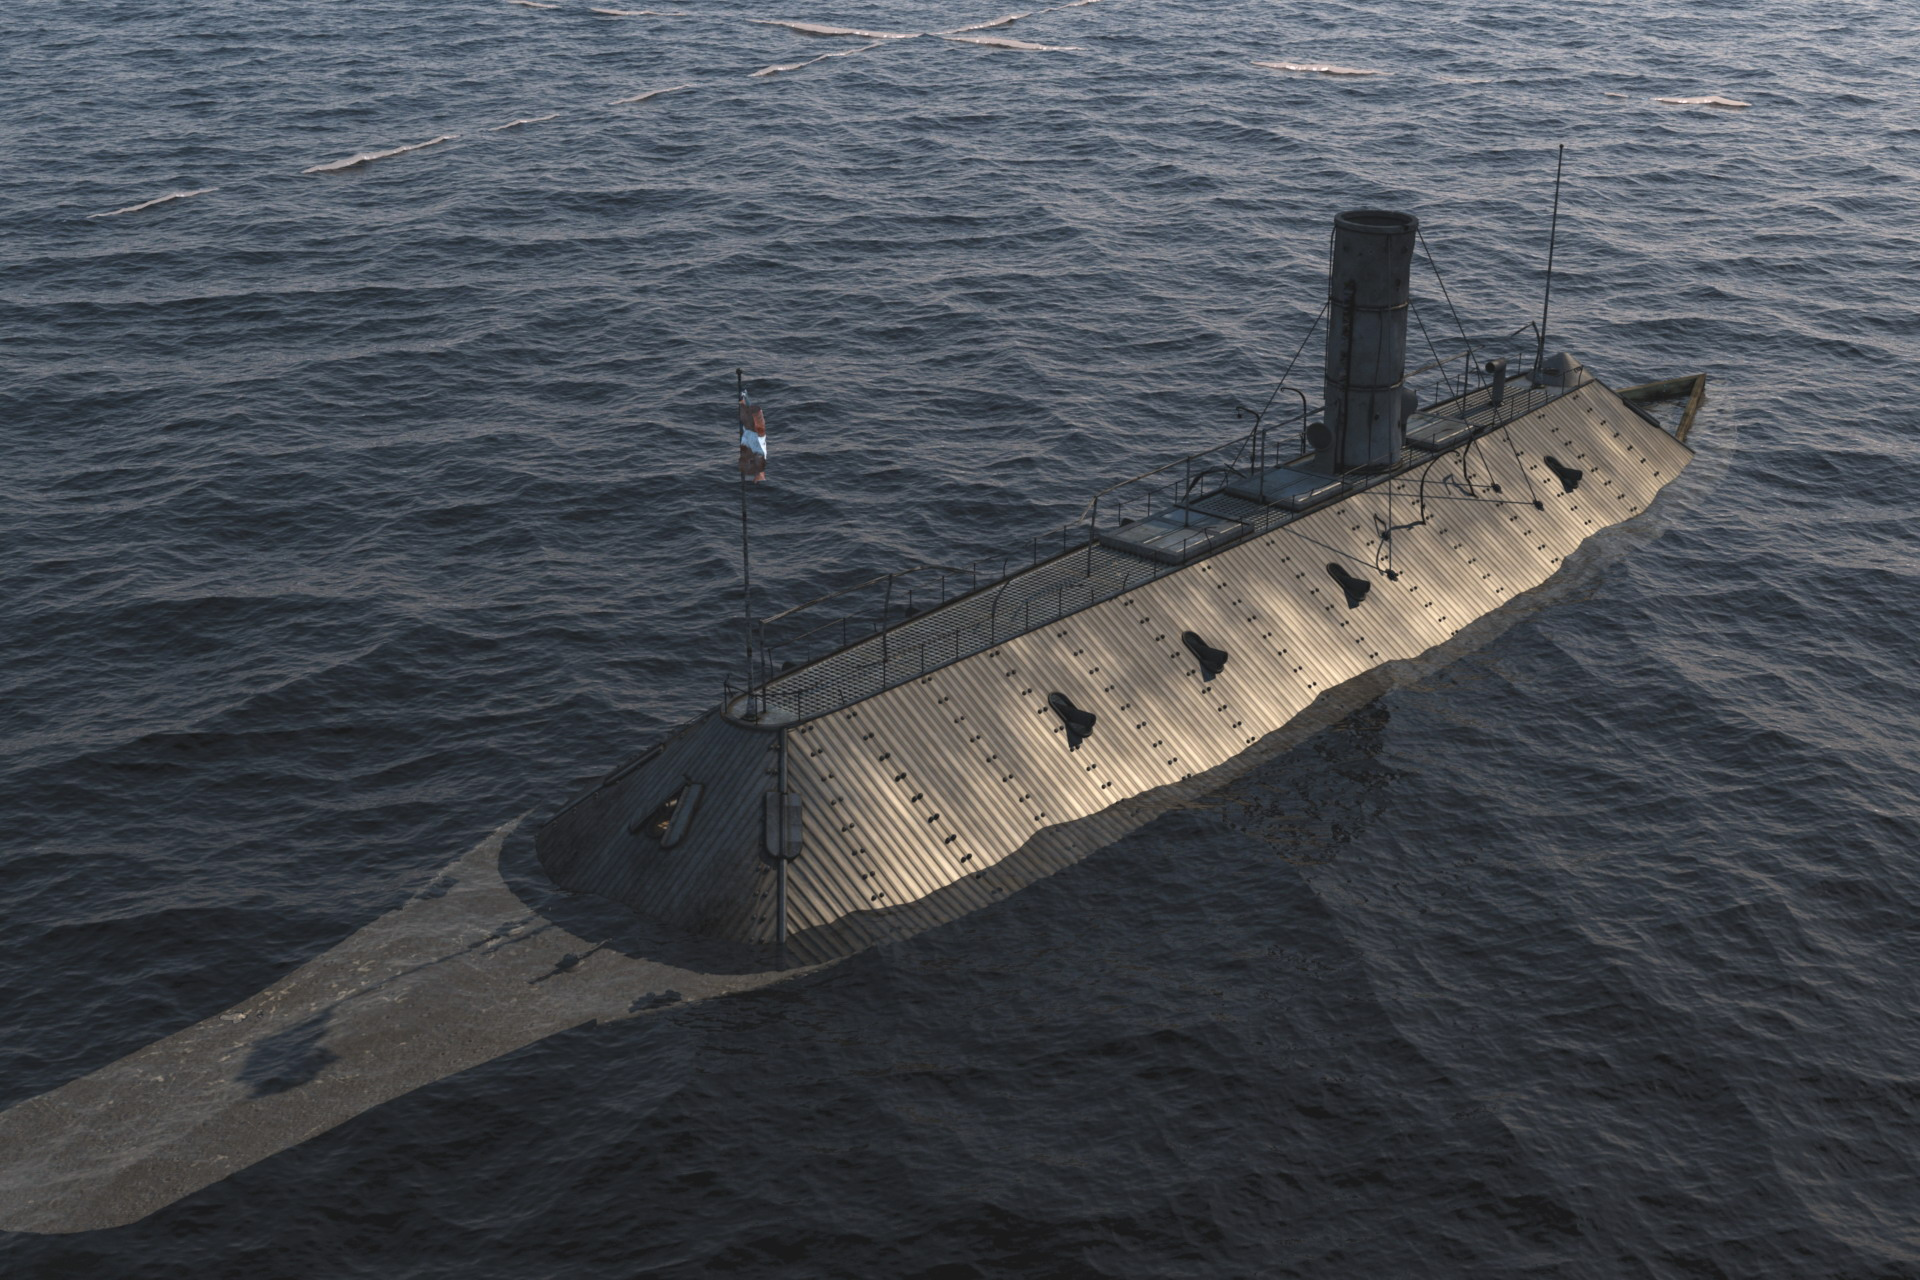 CSS Virginia Test Render